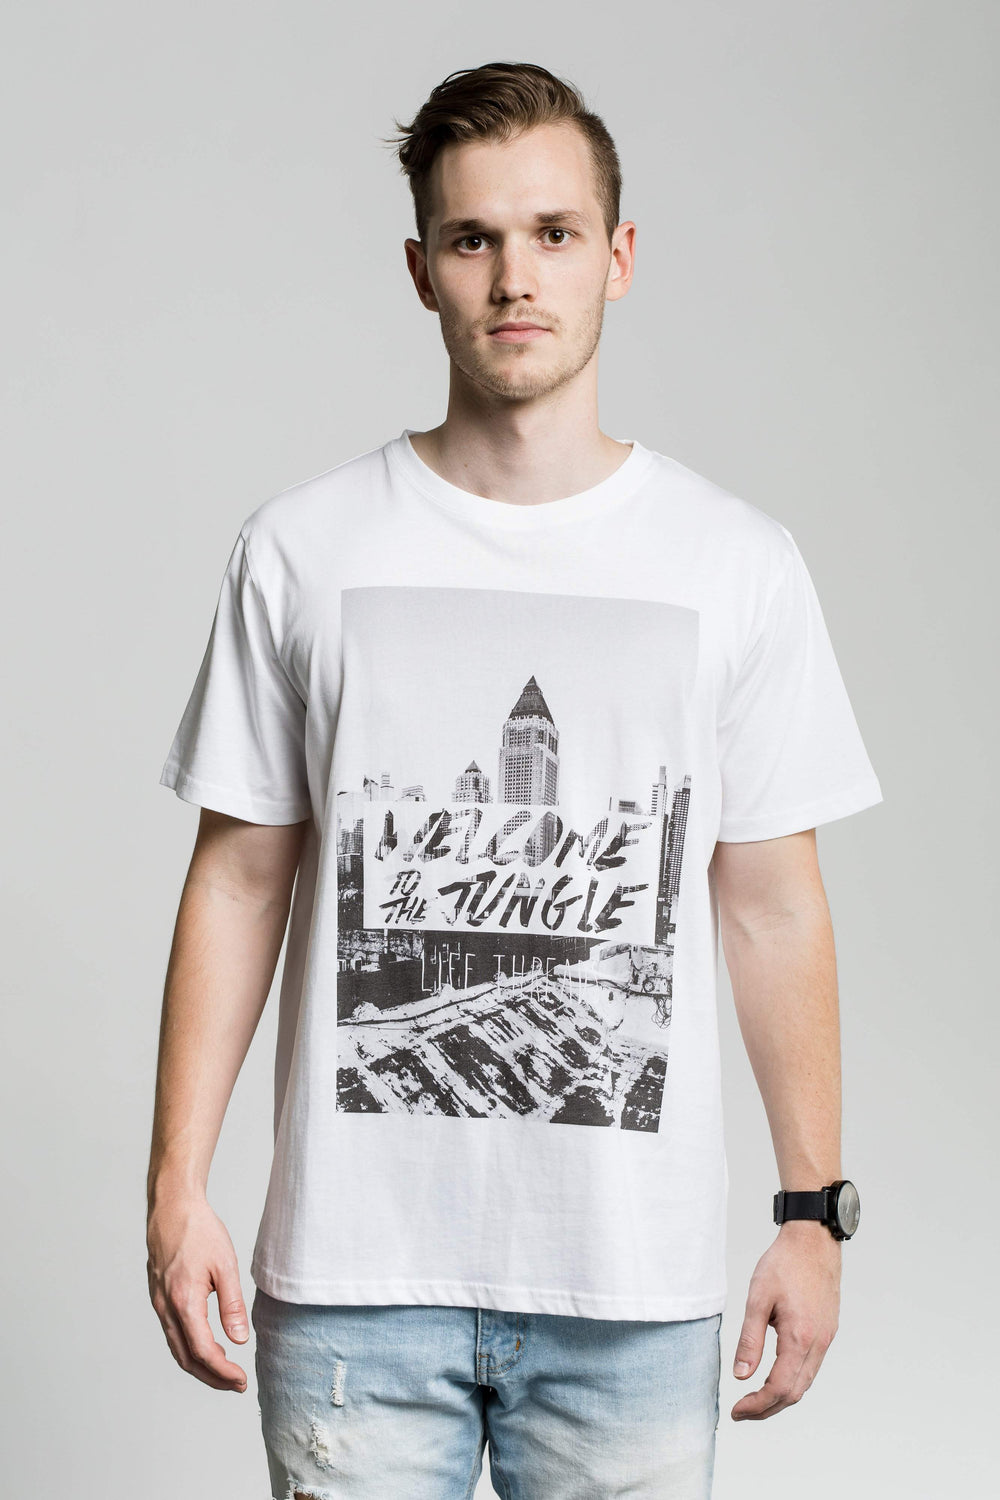 Welcome to the Jungle - Fairtrade & Organic T-Shirt-Fair Trade Clothing by Life Threads